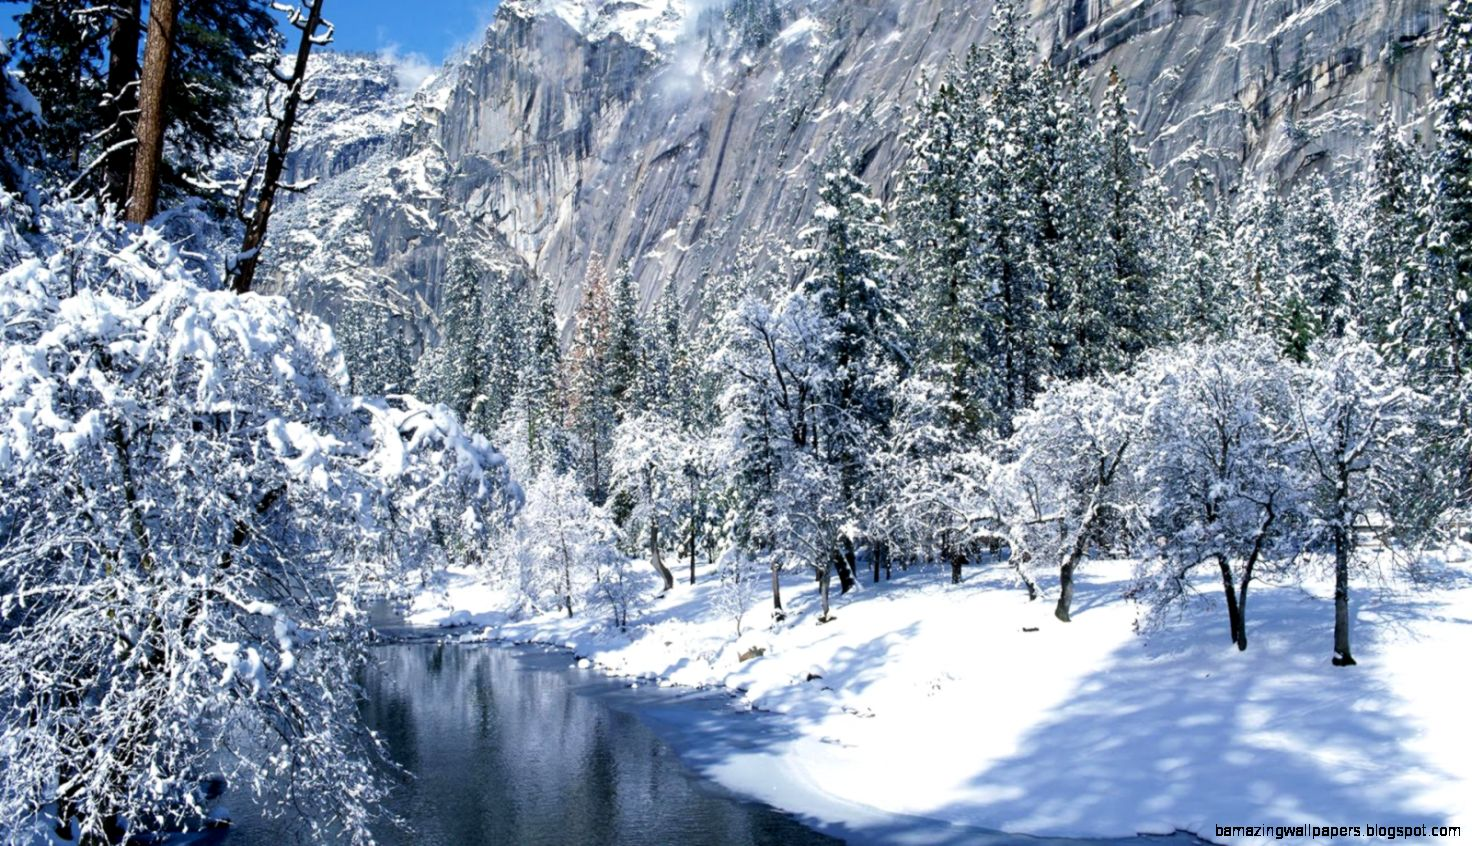 Download Beautiful Winter Wallpapers Beauty of Winter season